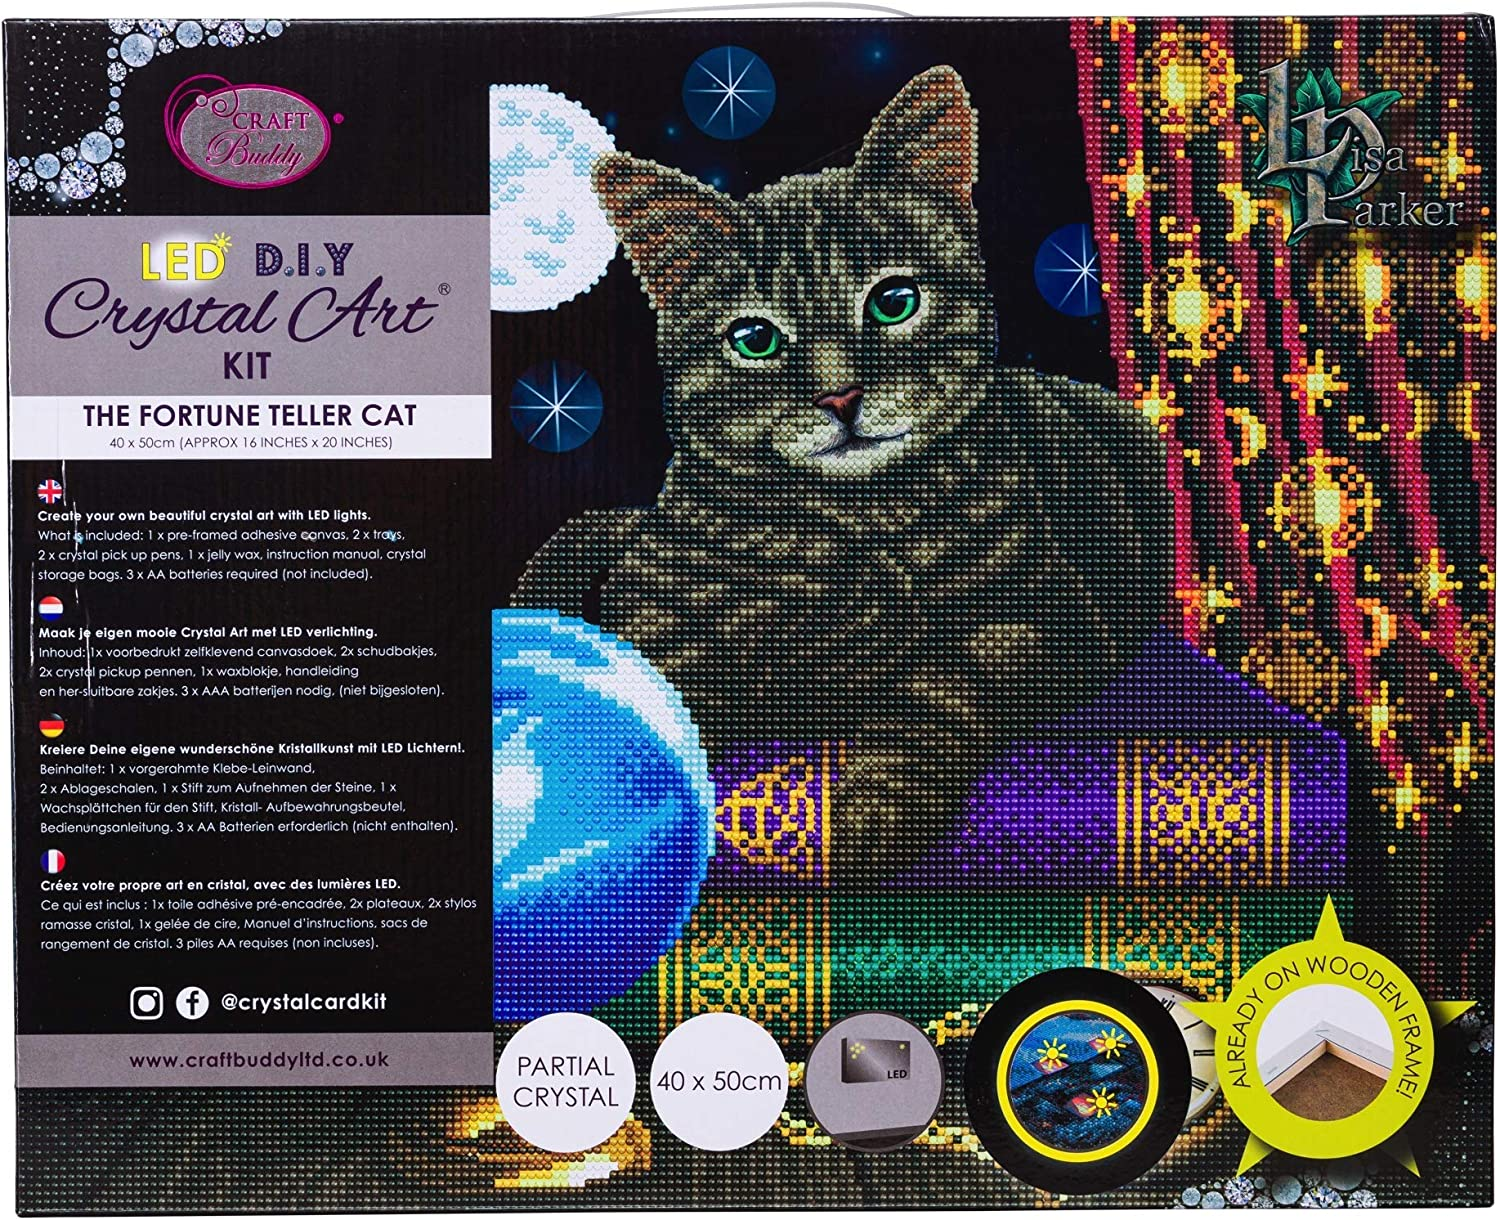 Craft Buddy Kristall Kunst Set mit LED Lichter Die Fortune Teller Katze